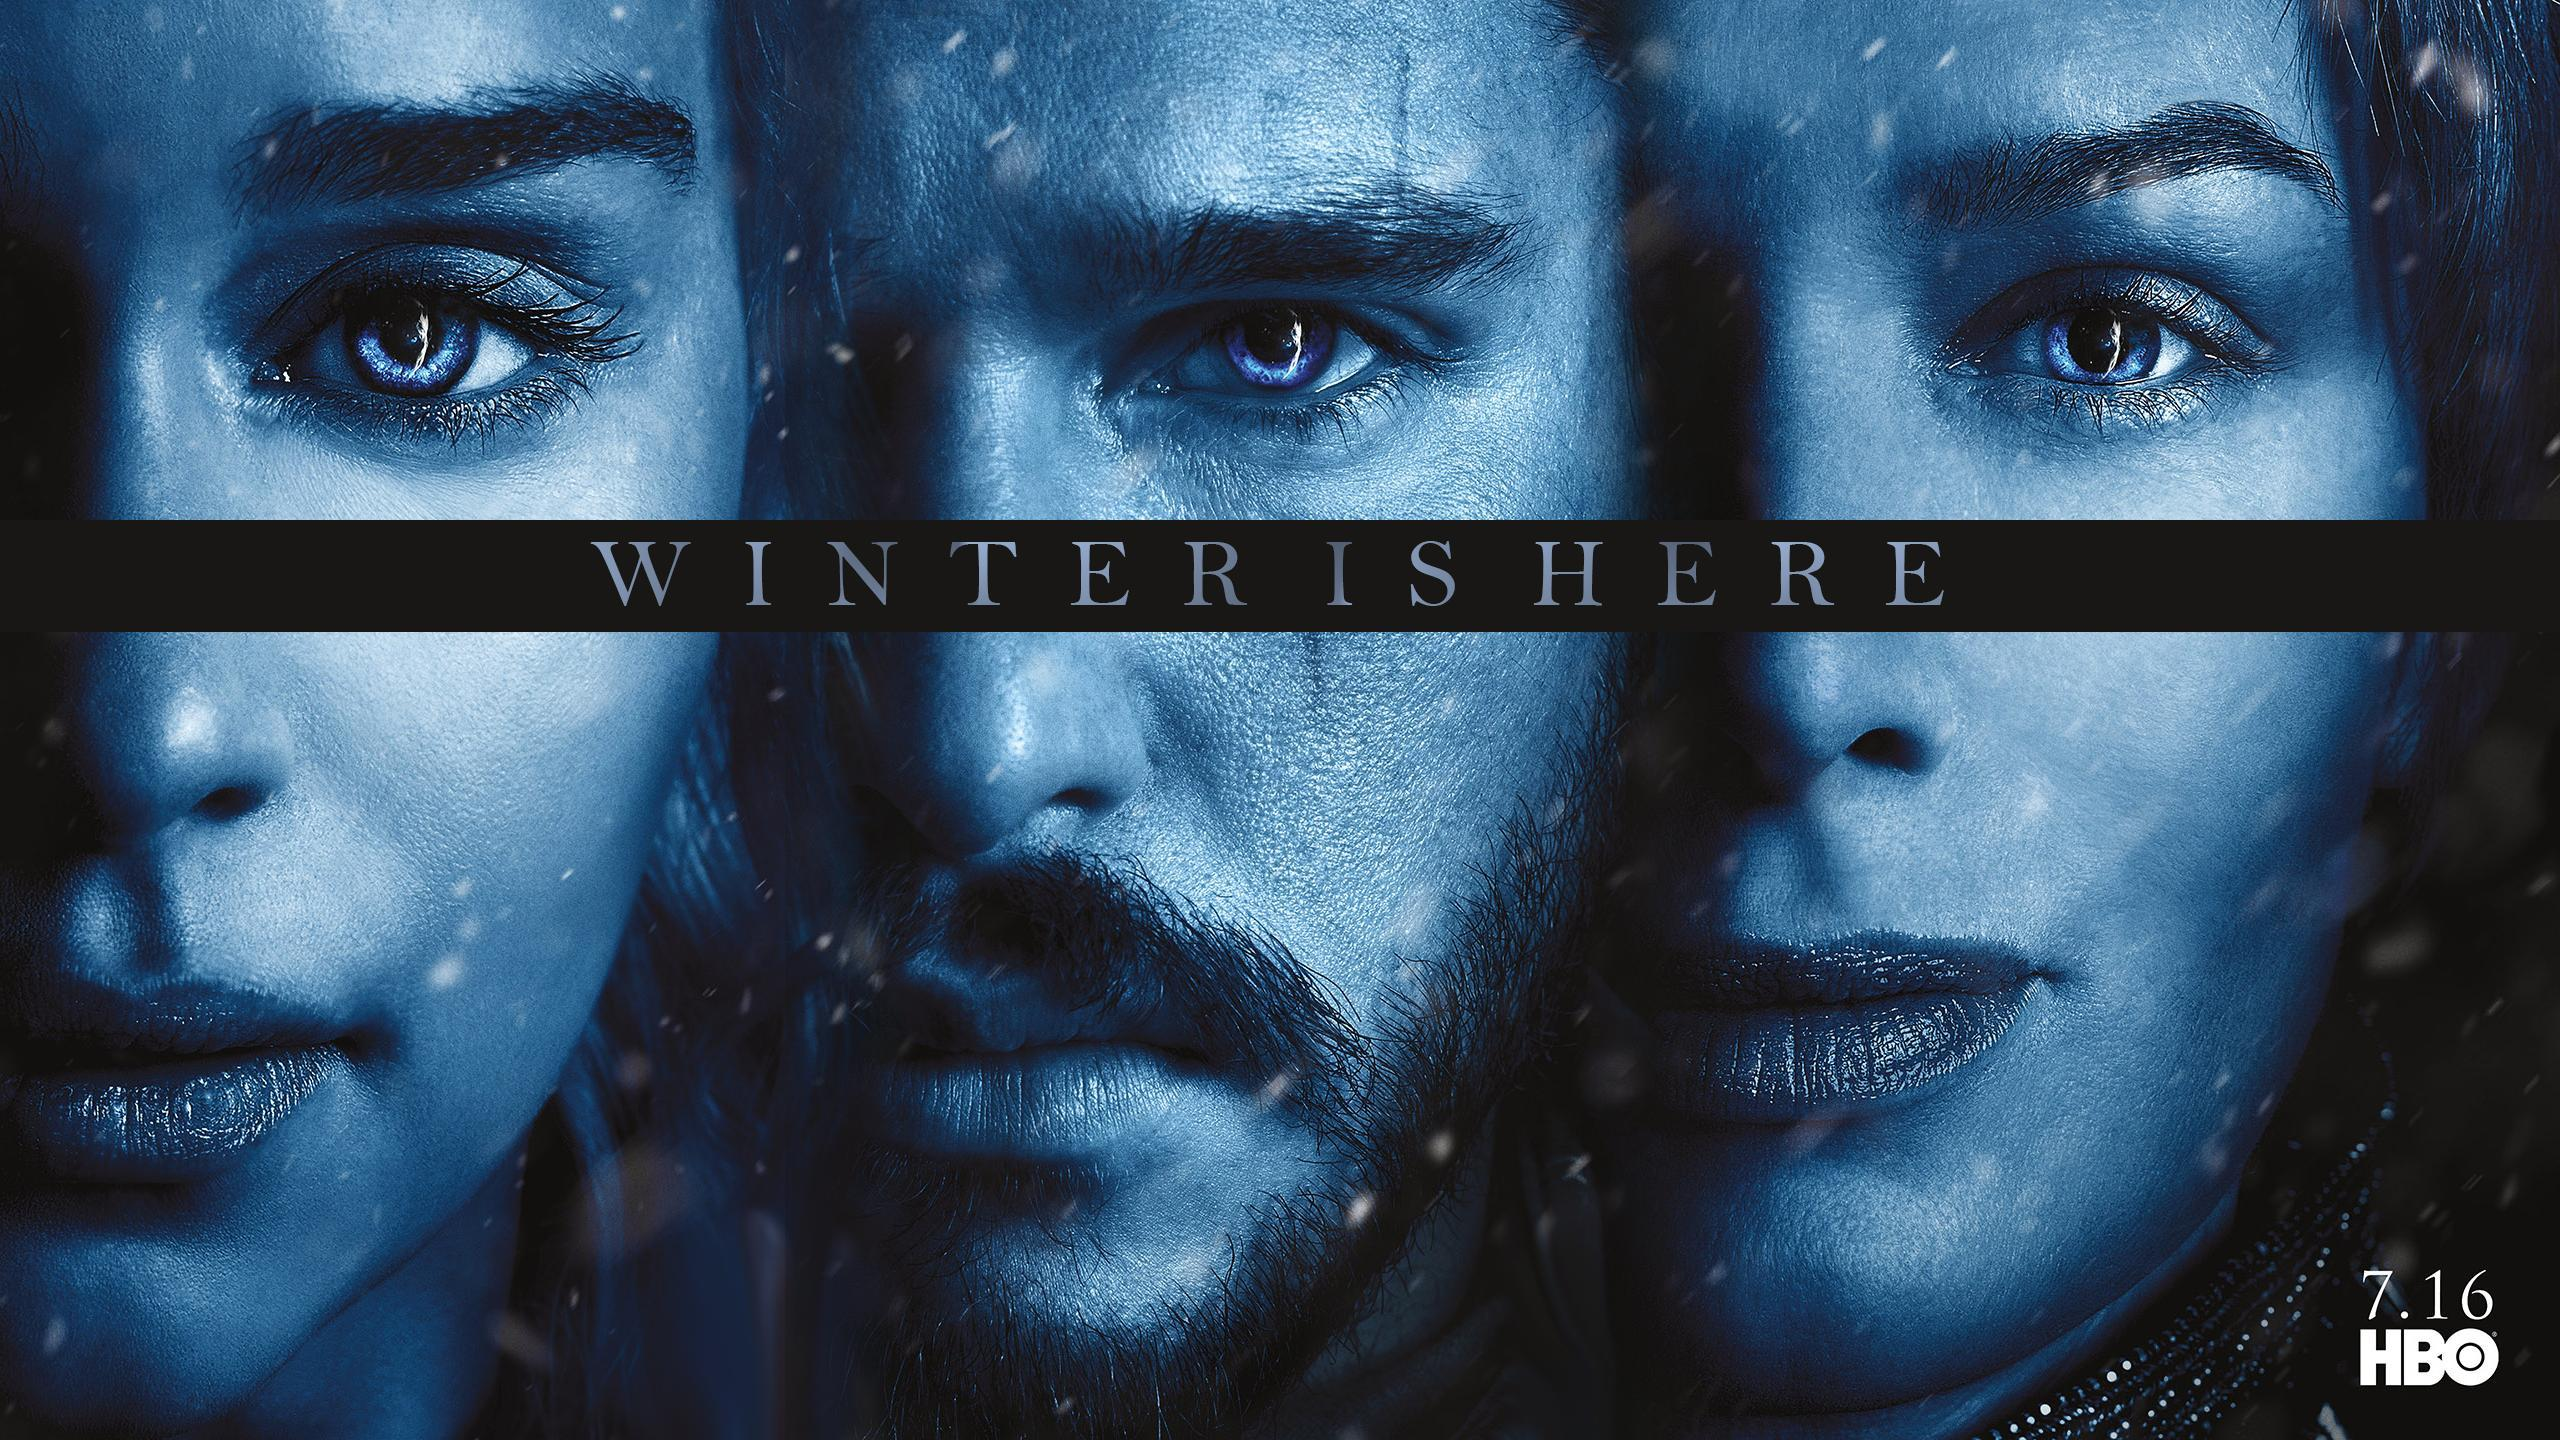 S7] Game Of thrones Season 7 Posters Wallpapers 2560 x 1440